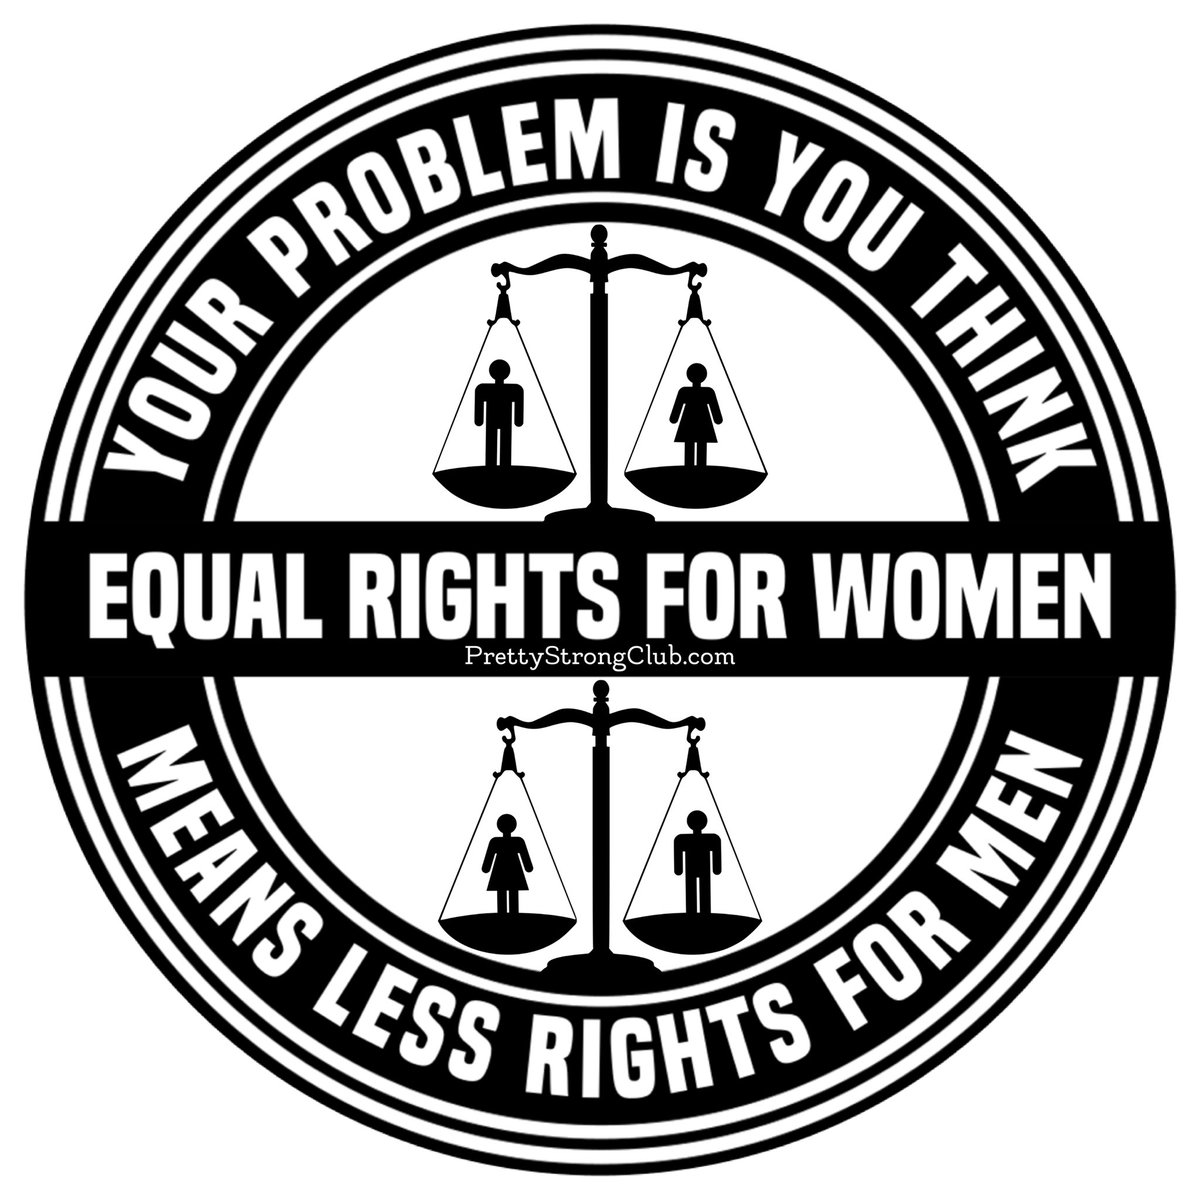 #EqualRightsForWomen doesn't mean less rights for men. Can I get an #Amen http://PrettyStrongClub.com pic.twitter.com/LB1Xi3uHIW